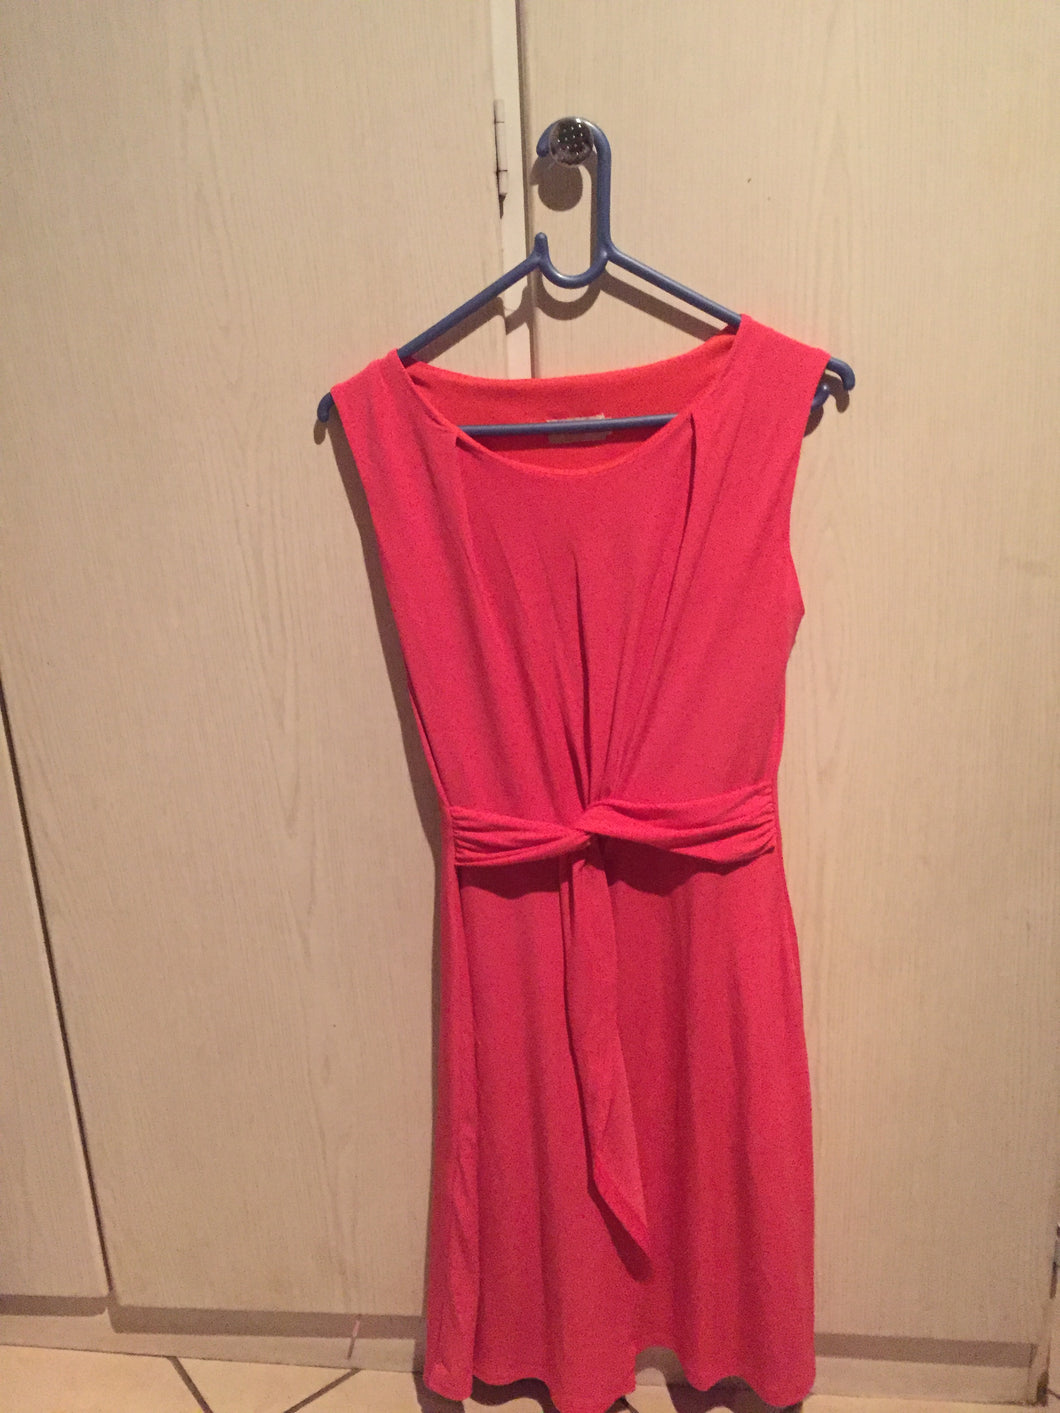 Coral ladies dress with wrap detail-dresses-Elinye_ithuba